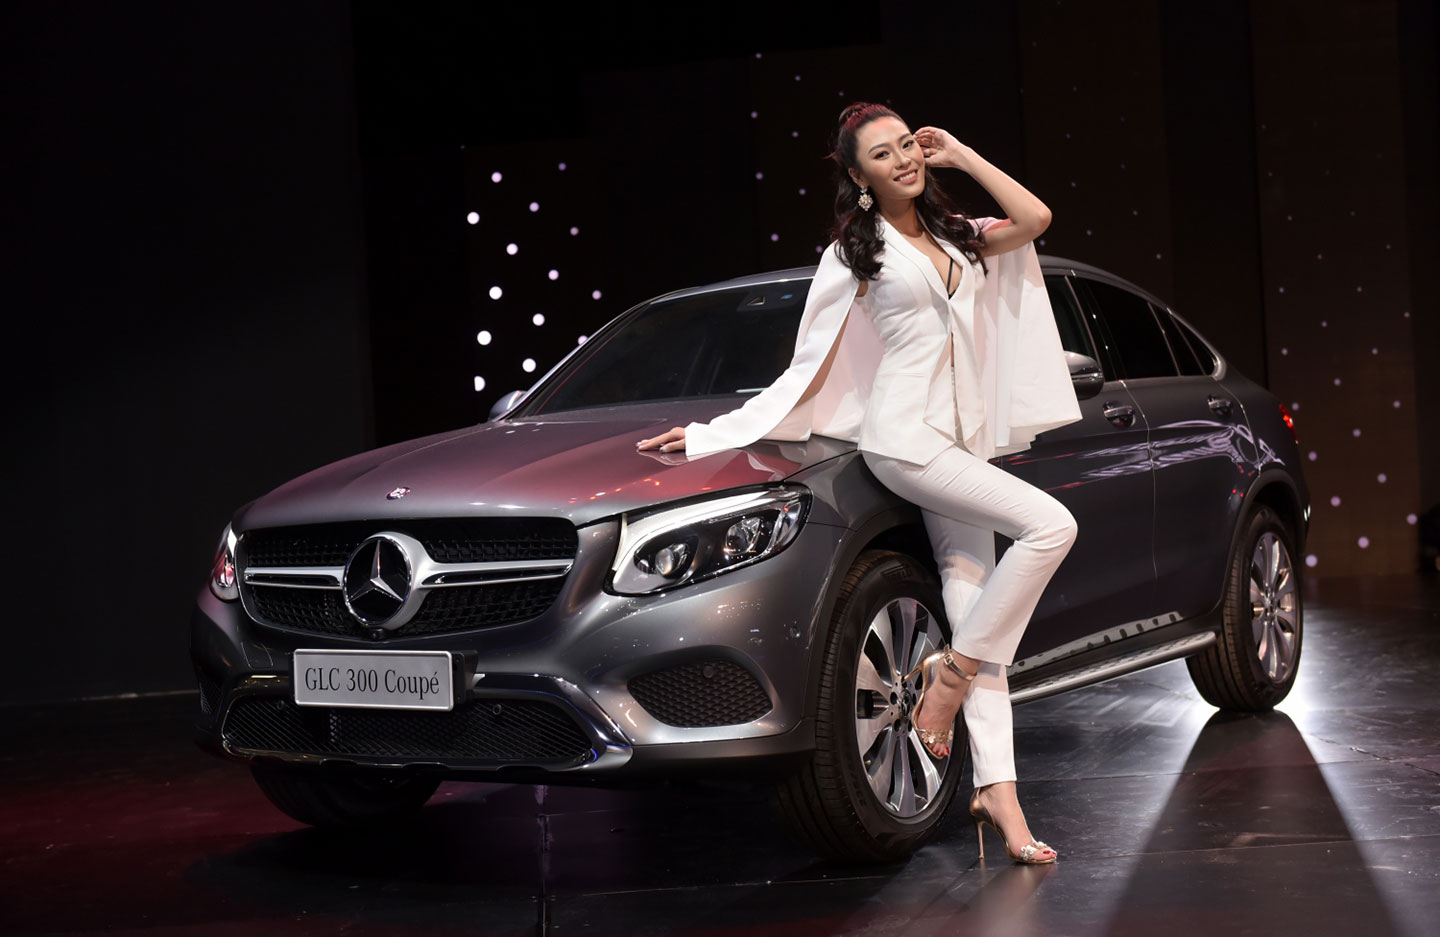 mercedes-benz-fascination-2017-nguoidep-6.jpg